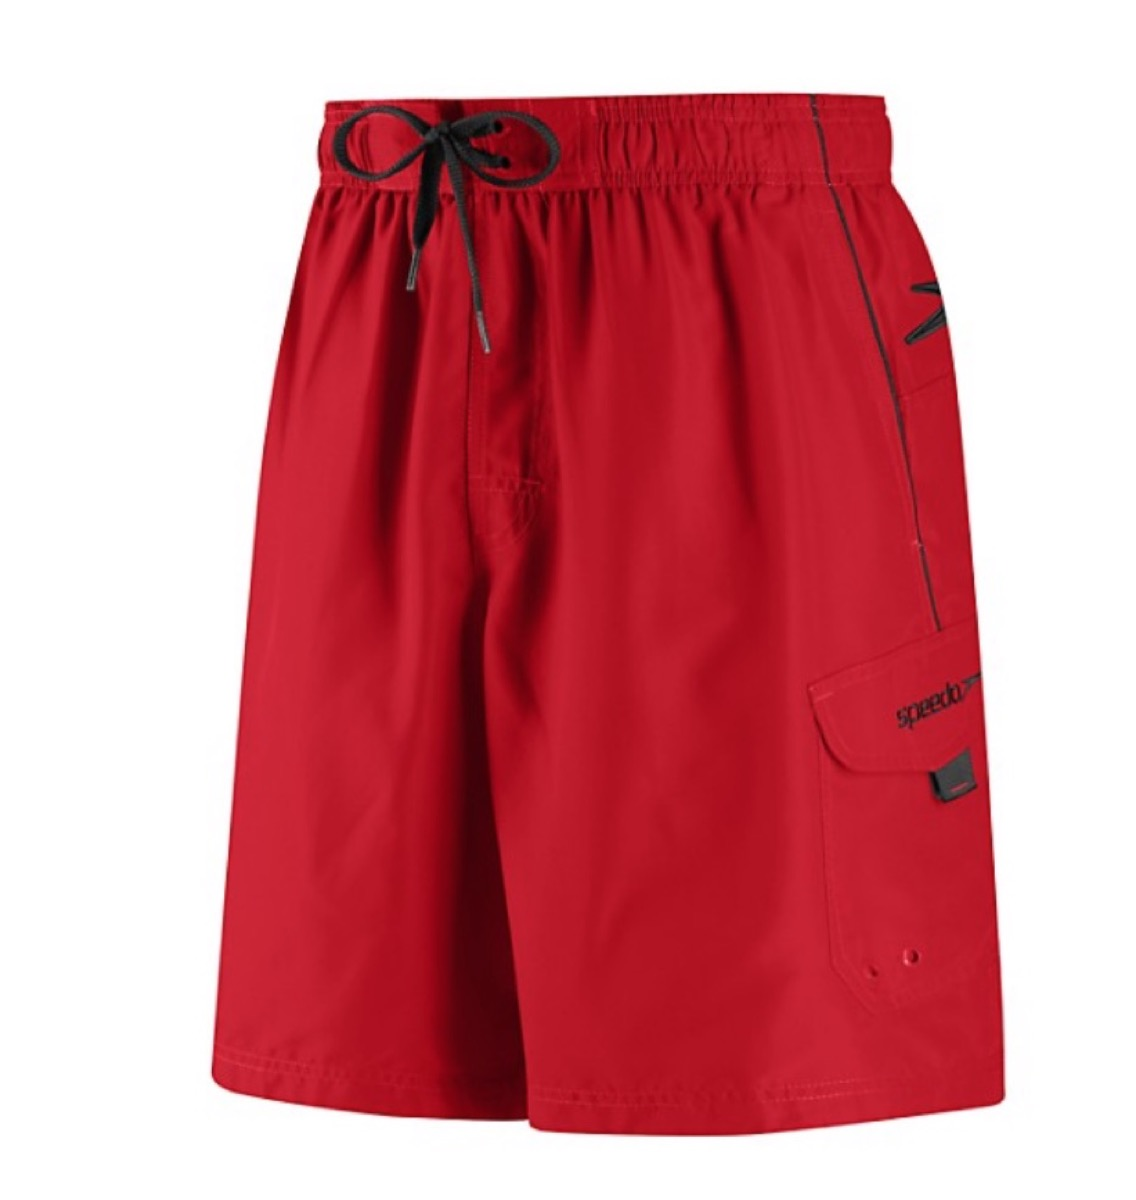 red board shorts, cheap swimsuits